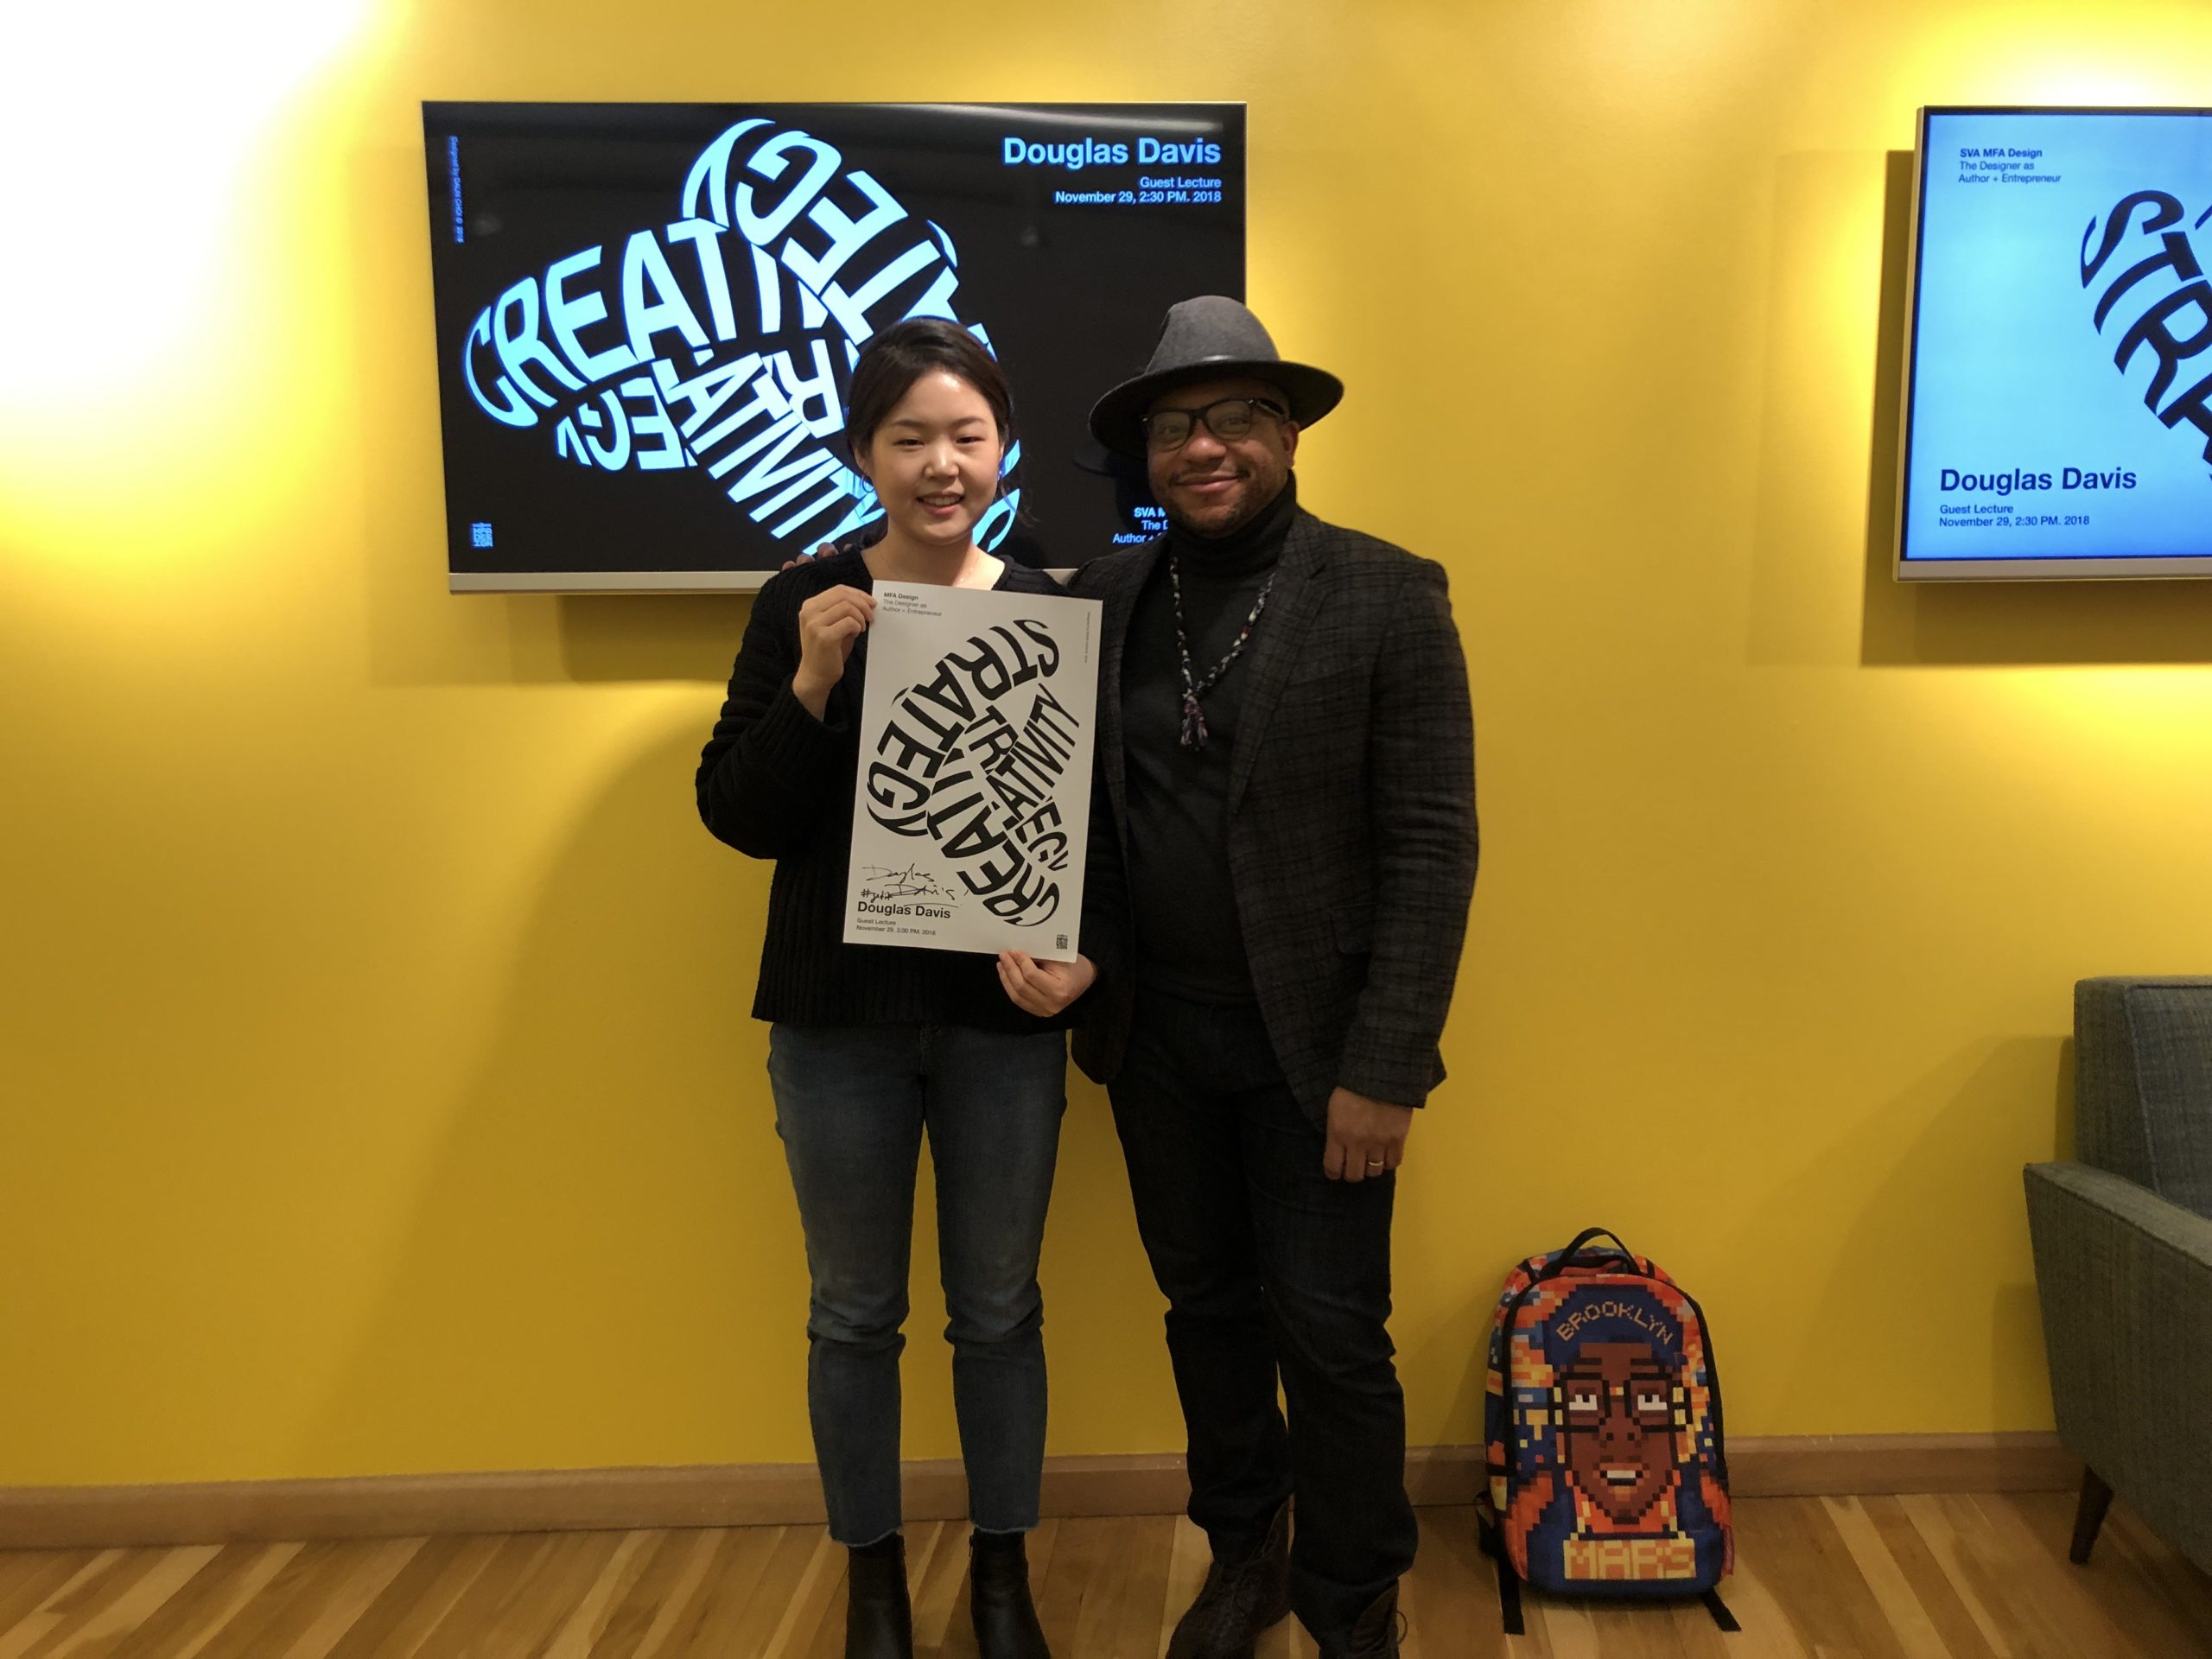 Douglas Davis with a student holding poster